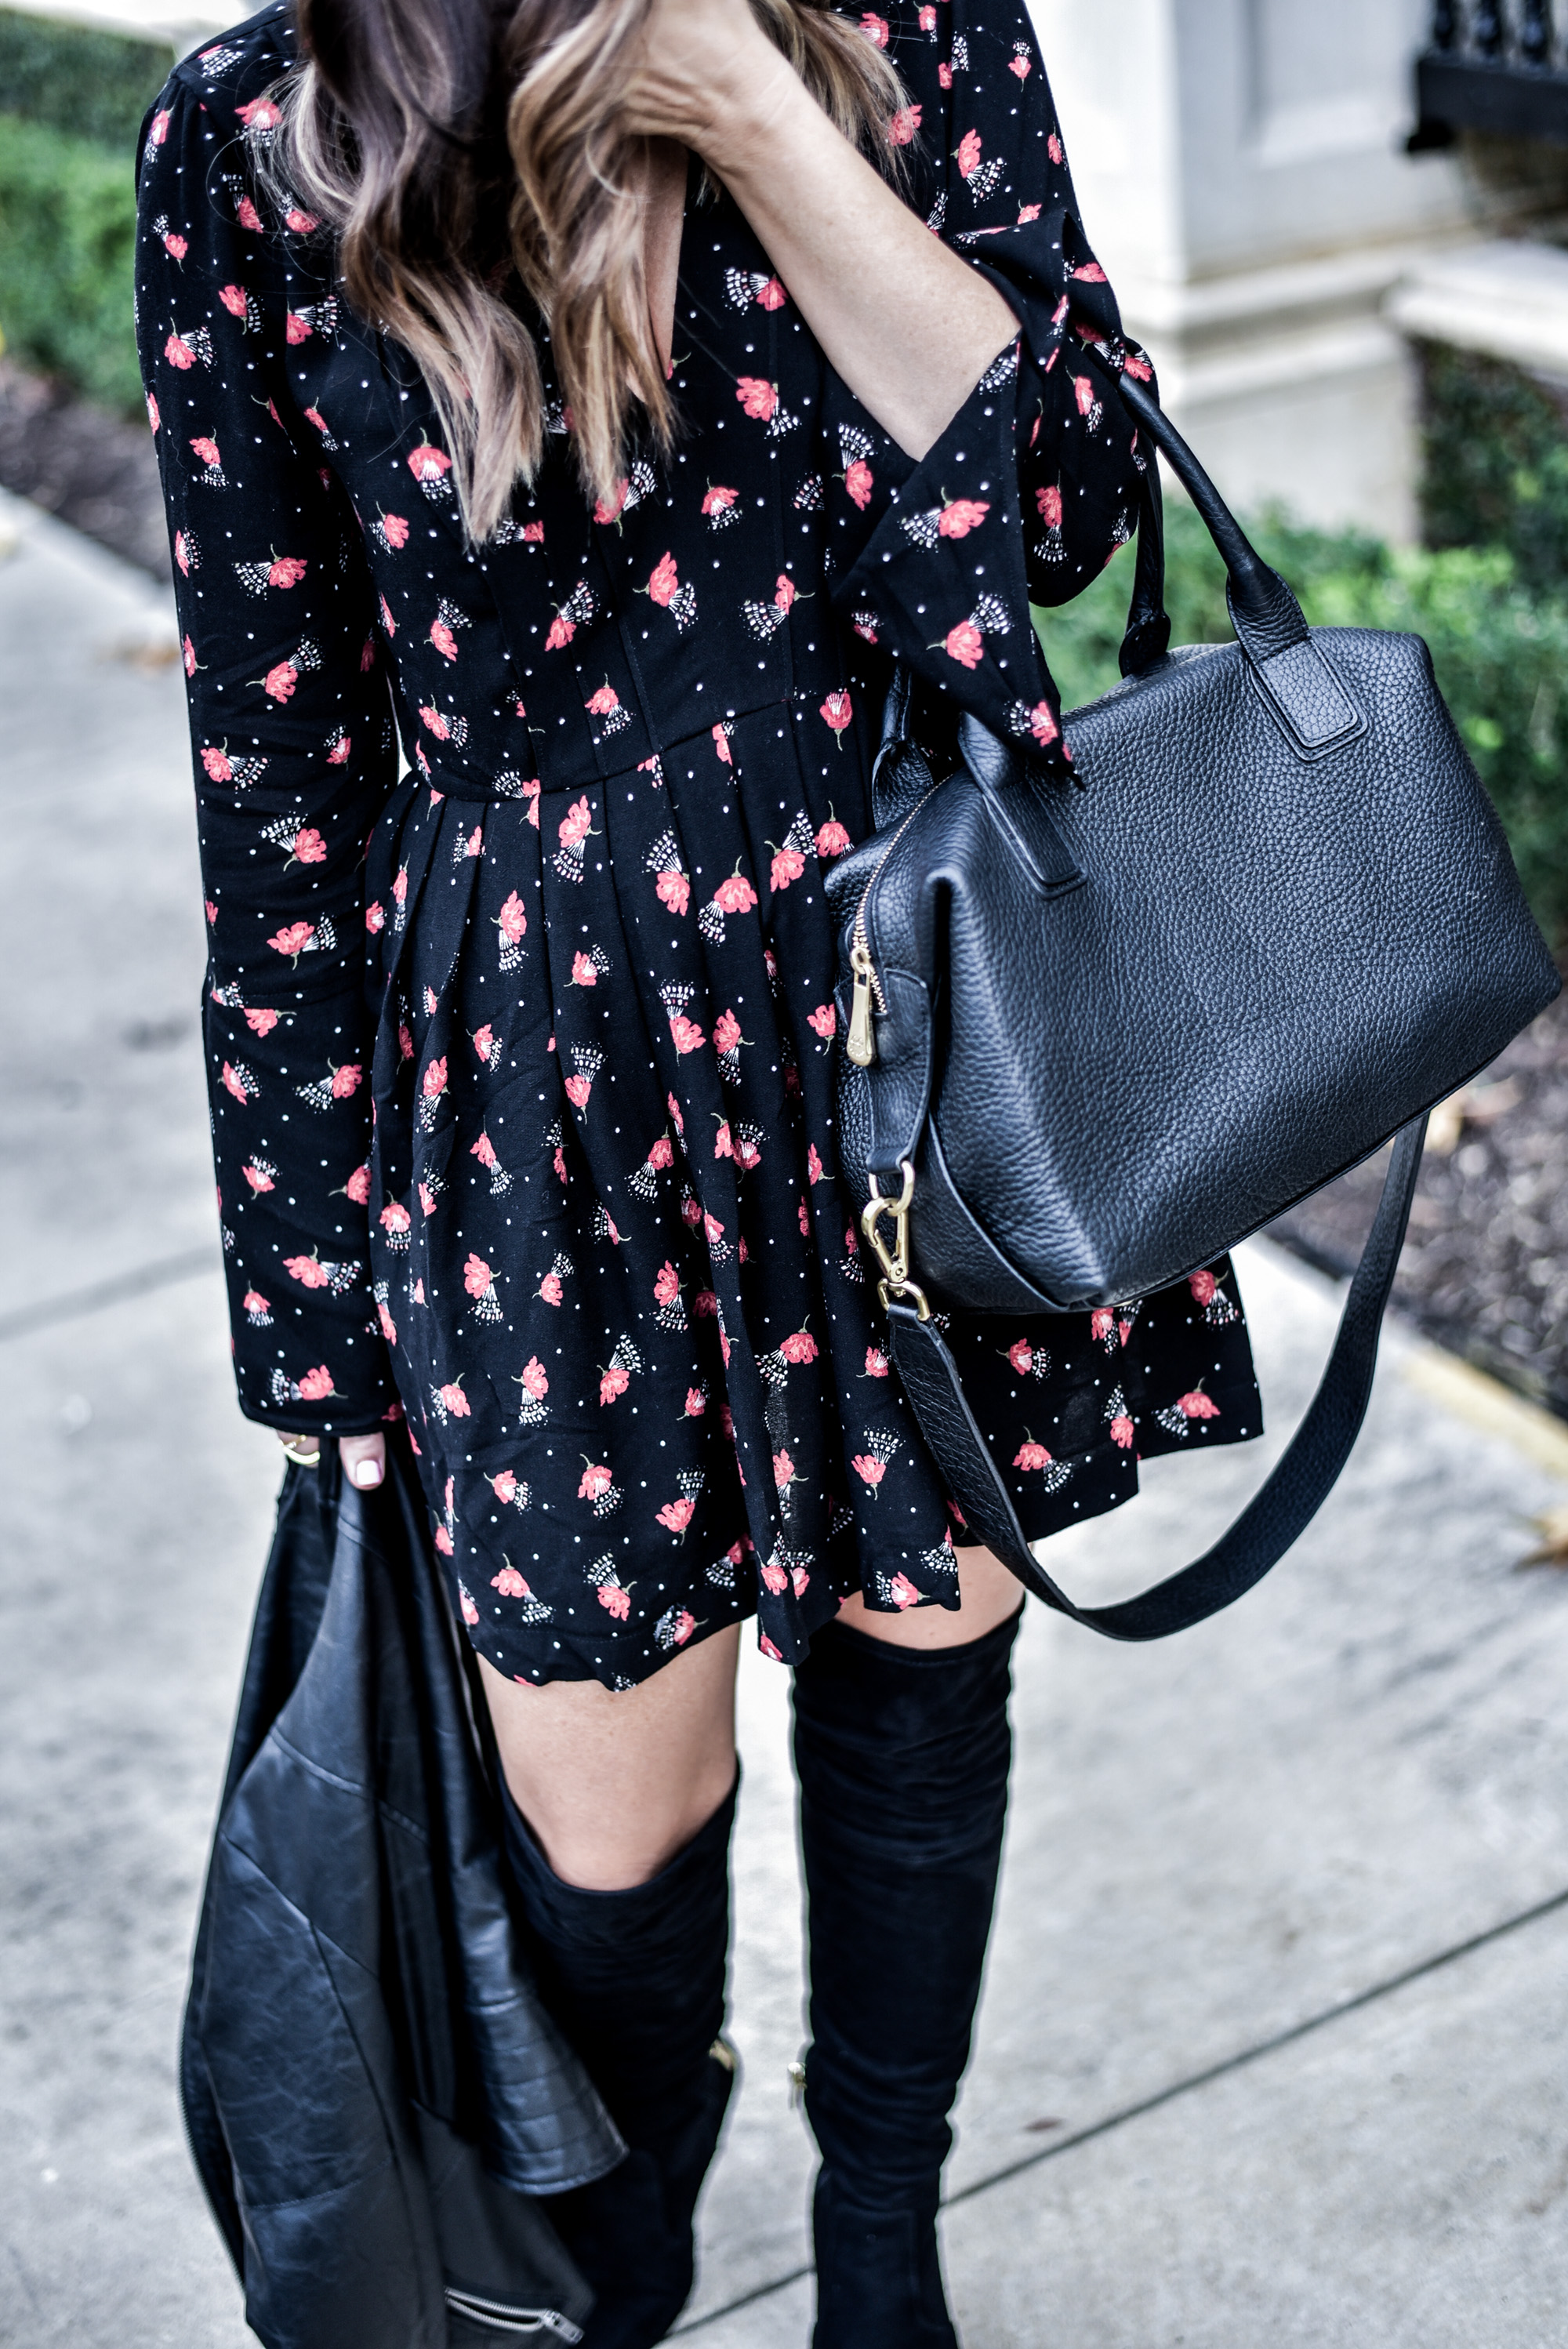 Tiffany Jais, Houston style blogger and writer of the fashion blog Flaunt and Center wearing a floral printed mini dress by Free People